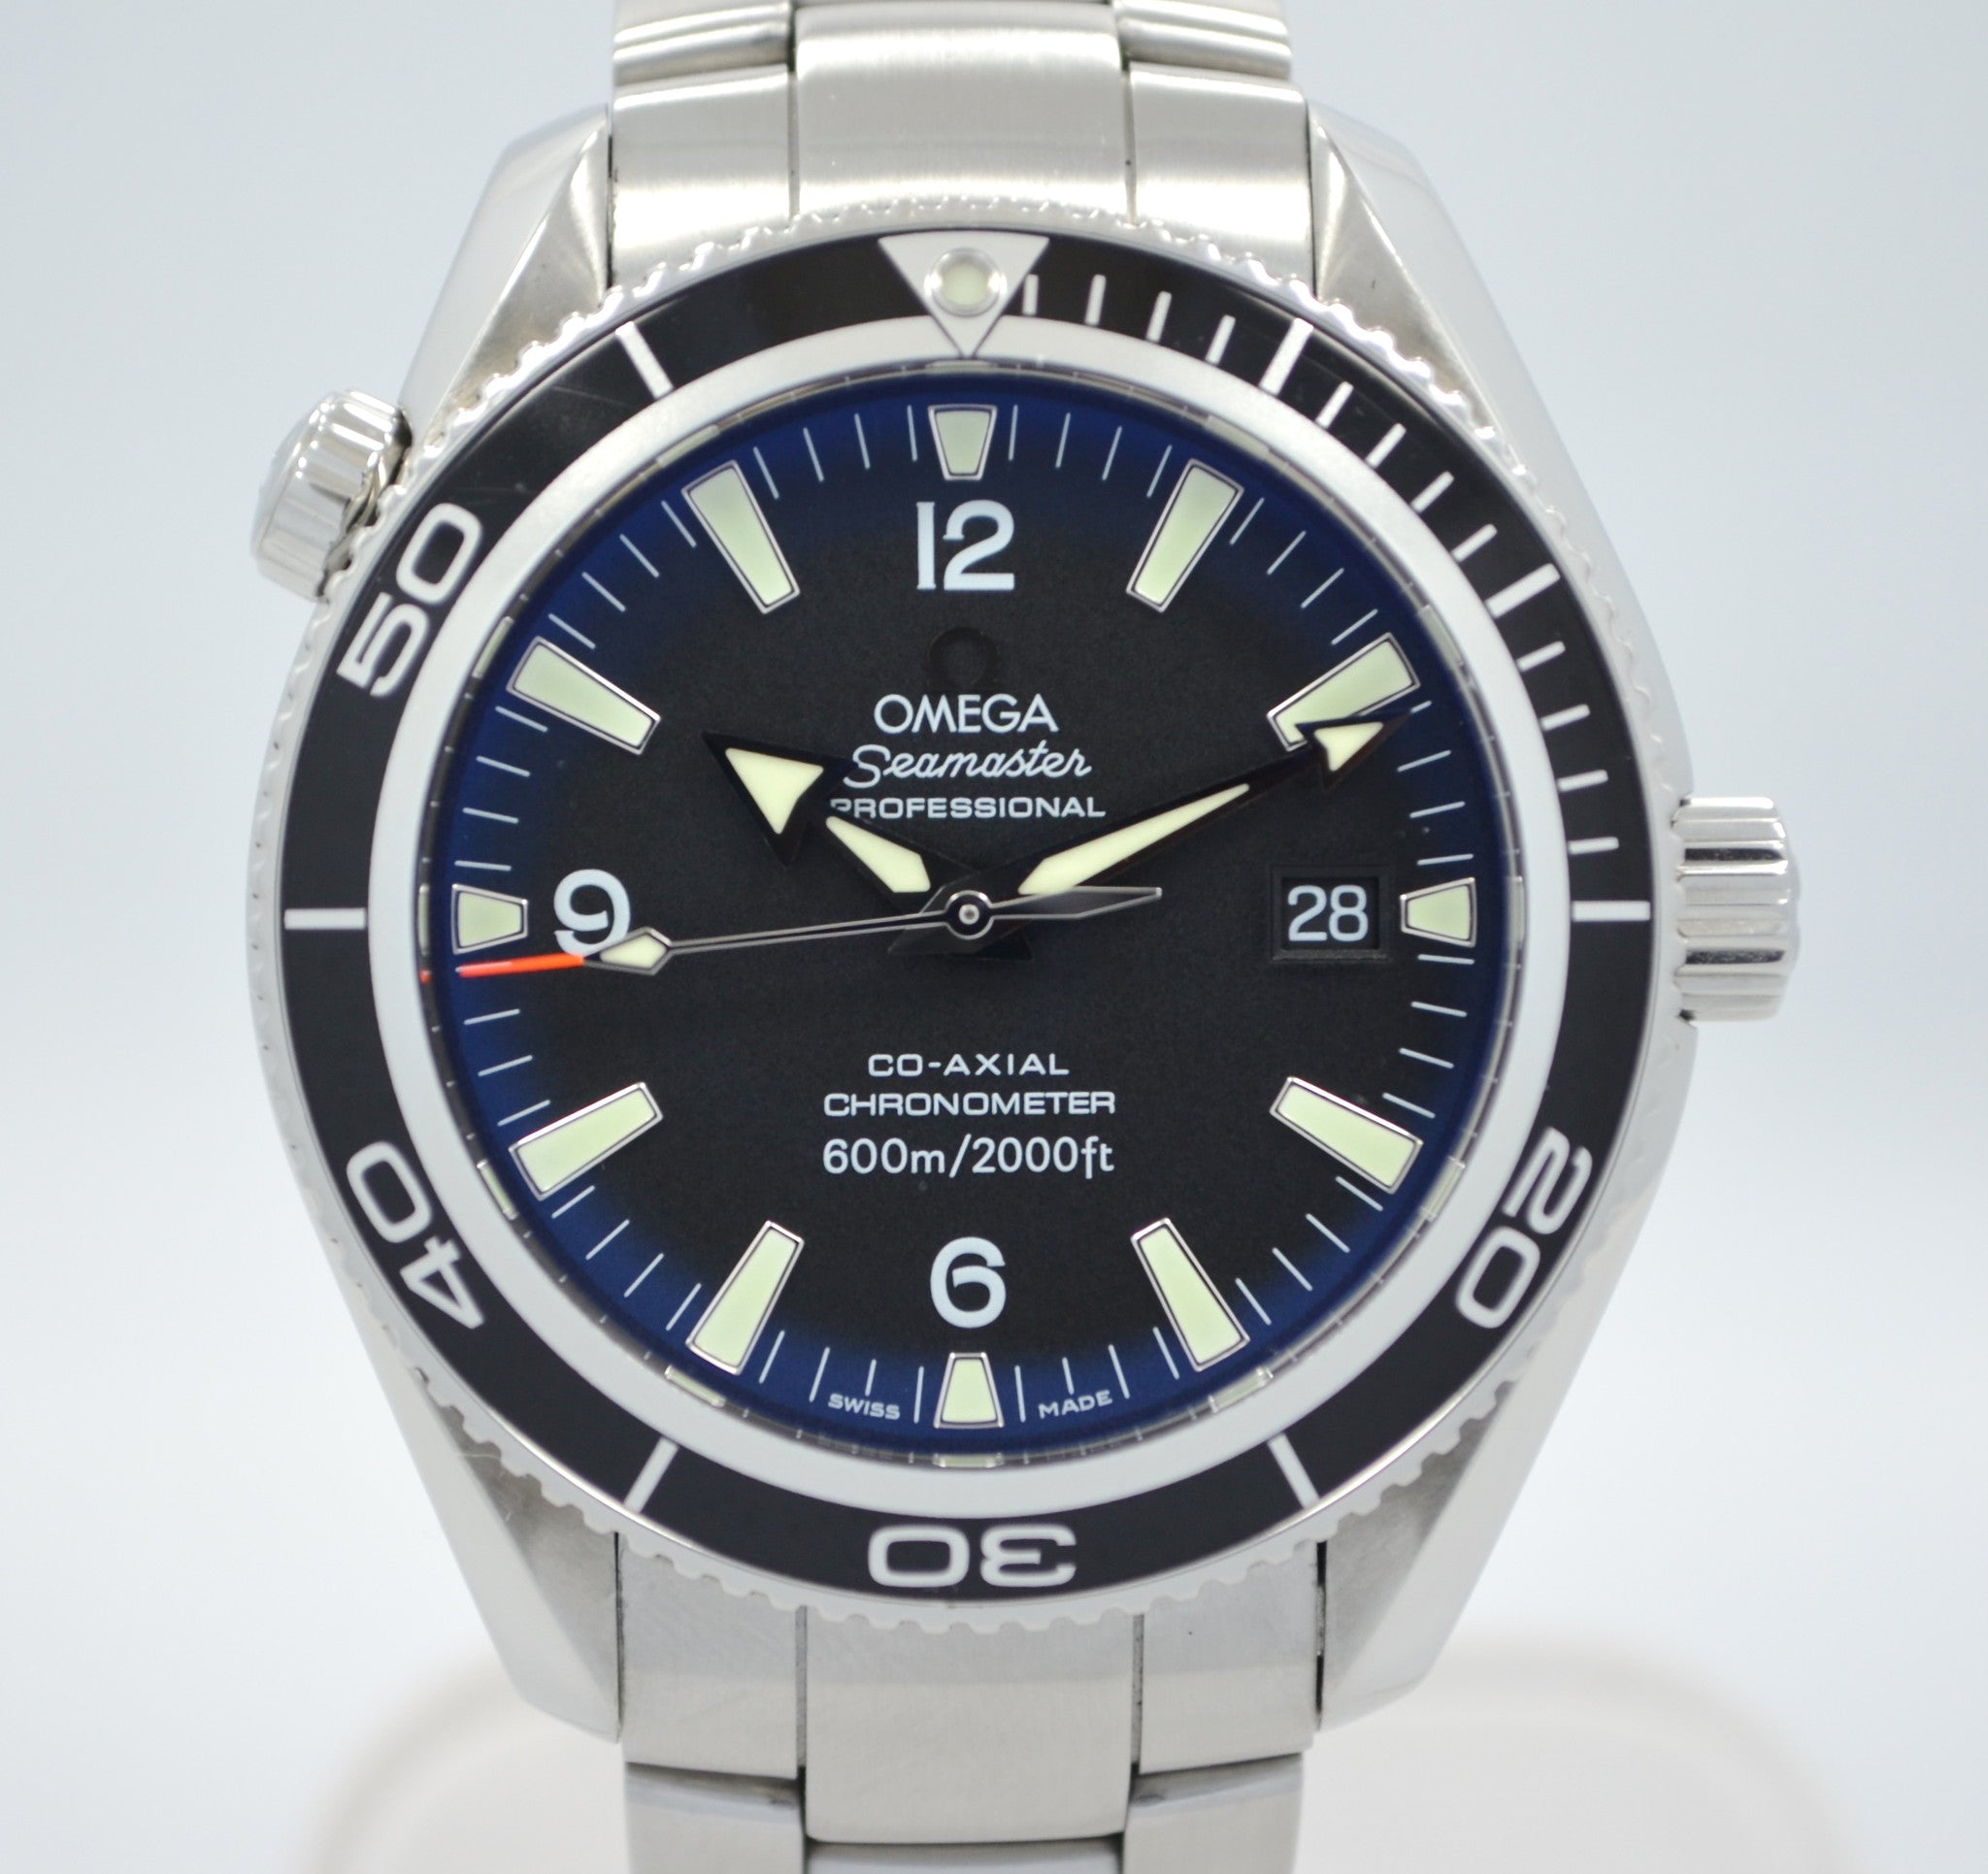 Omega Seamster Planet Ocean 2201.50 Steel Automatic Co-Axial Wristwatch - Hashtag Watch Company